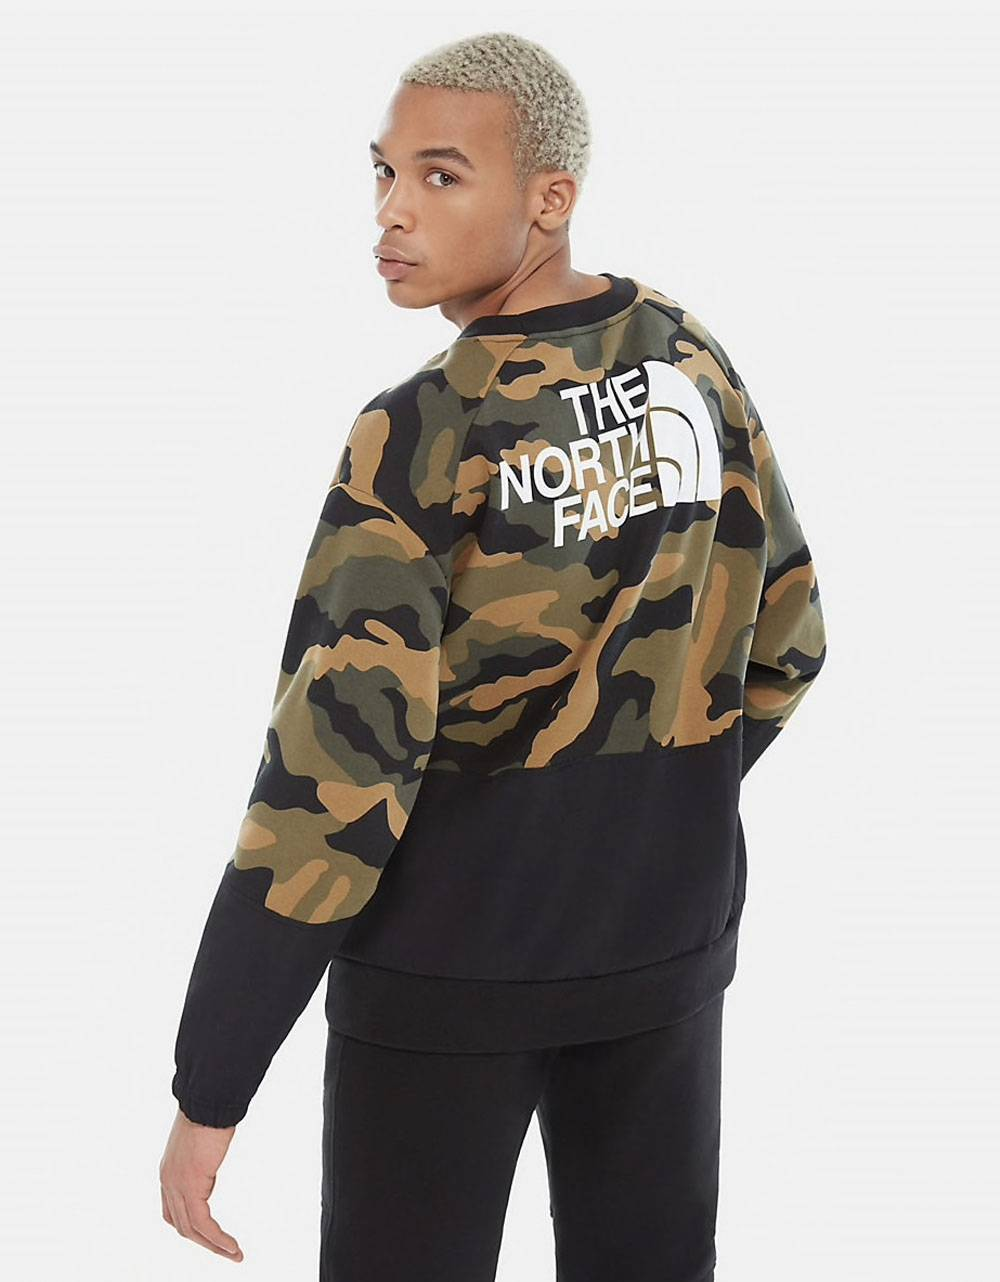 THE NORTH FACE Graphic Crewneck sweater - Burnt Olive Green Camo THE NORTH FACE Sweater 69,67€